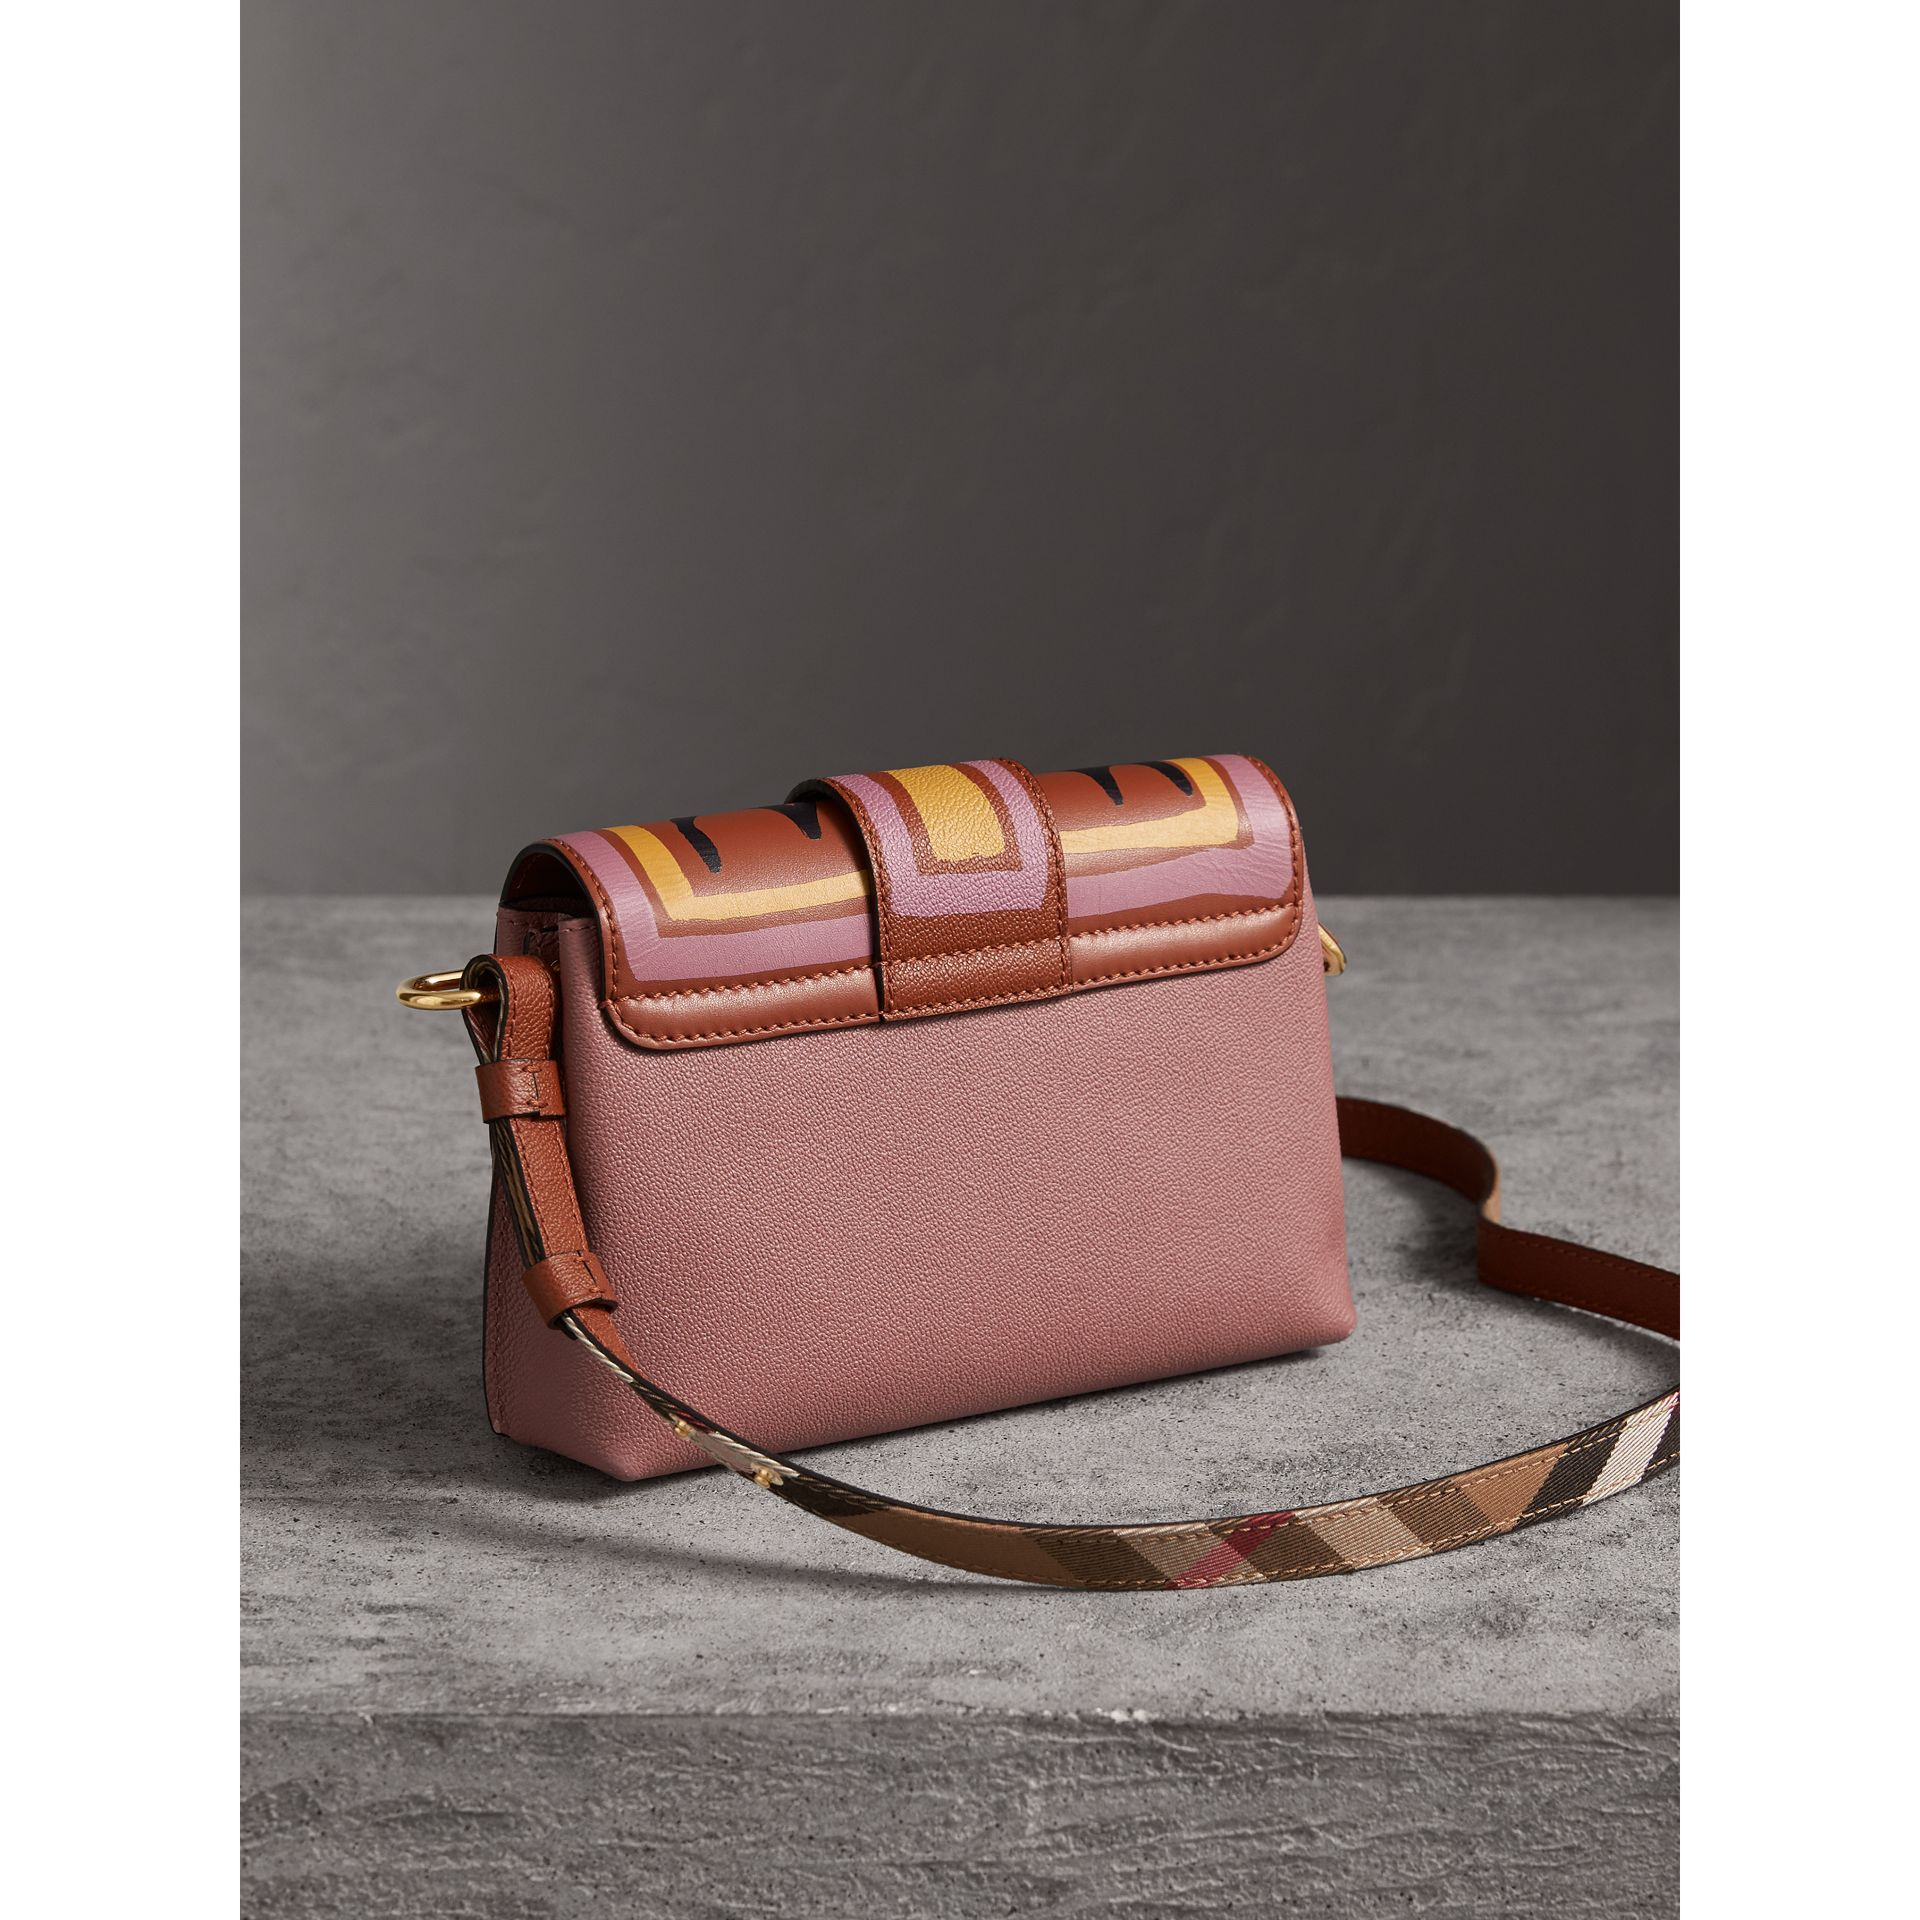 The Buckle Crossbody Bag in Trompe L'oeil Leather in Dusty Pink/bright Toffee - Women | Burberry Canada - gallery image 4